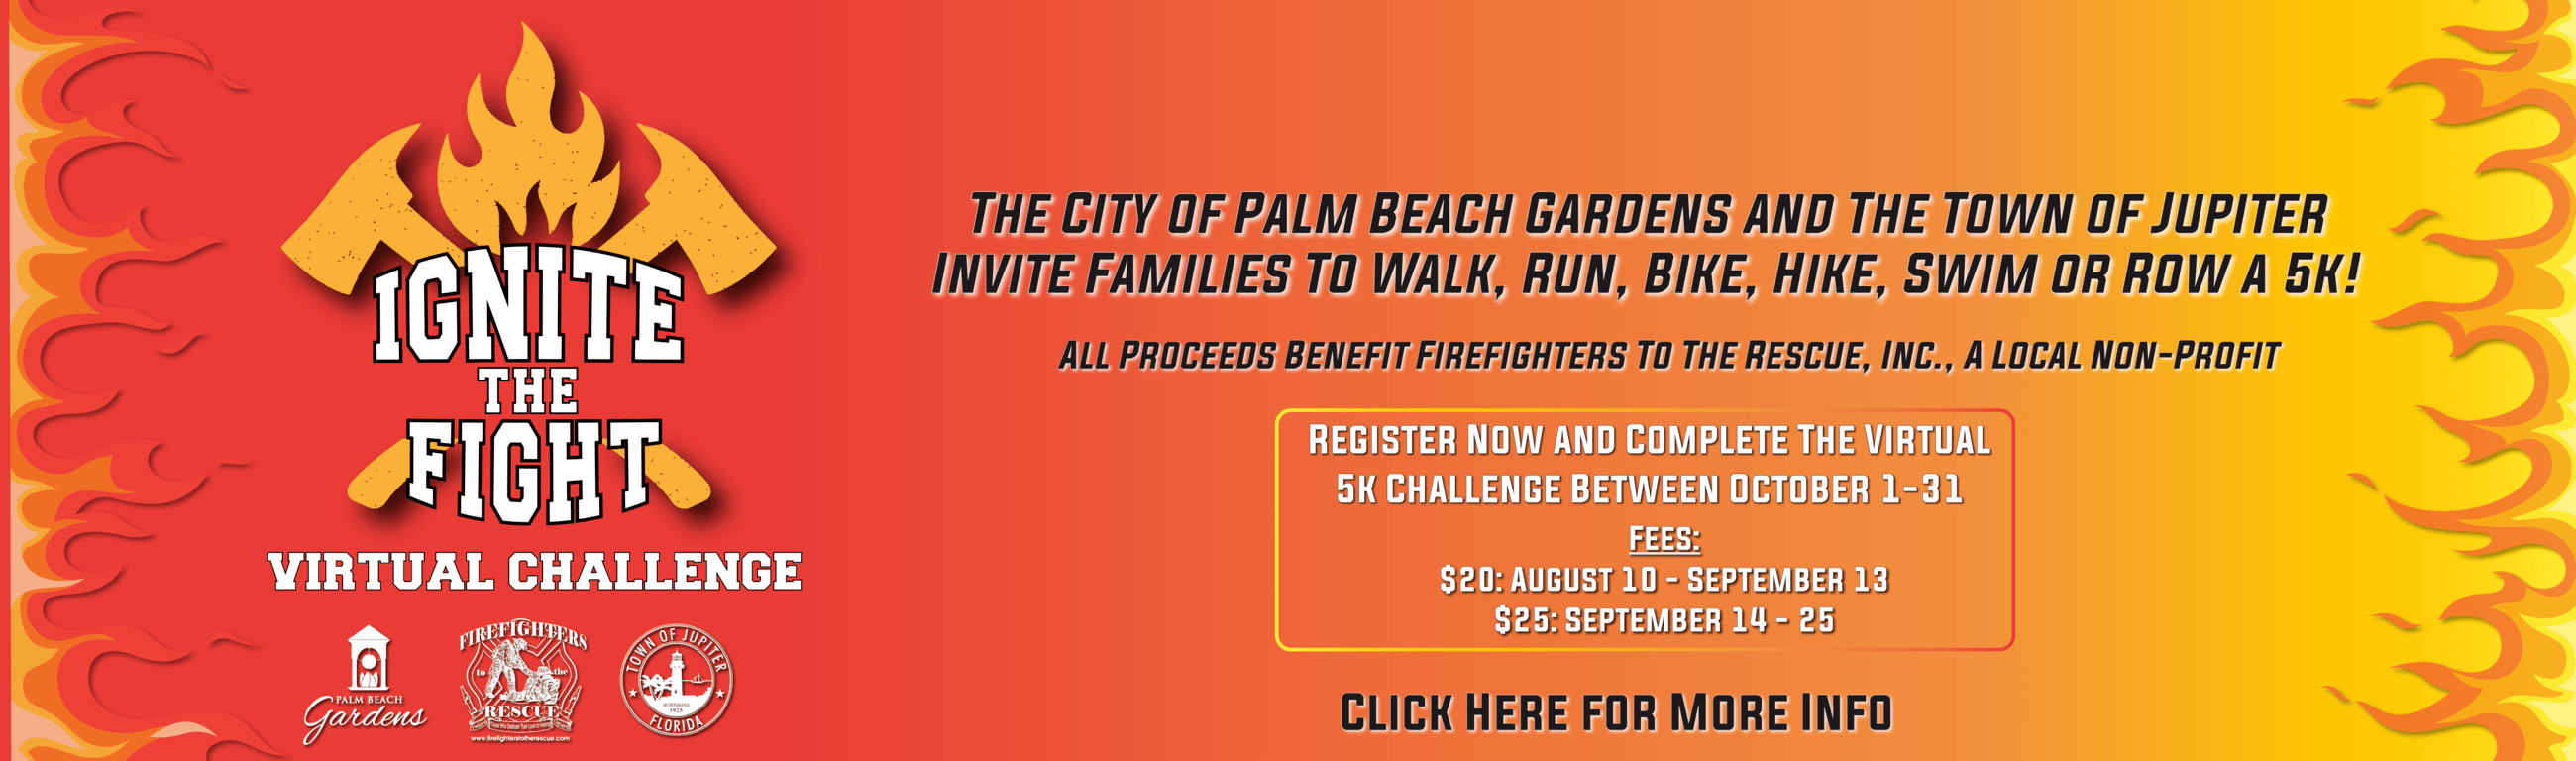 Ignite the Fight 5K event registration.